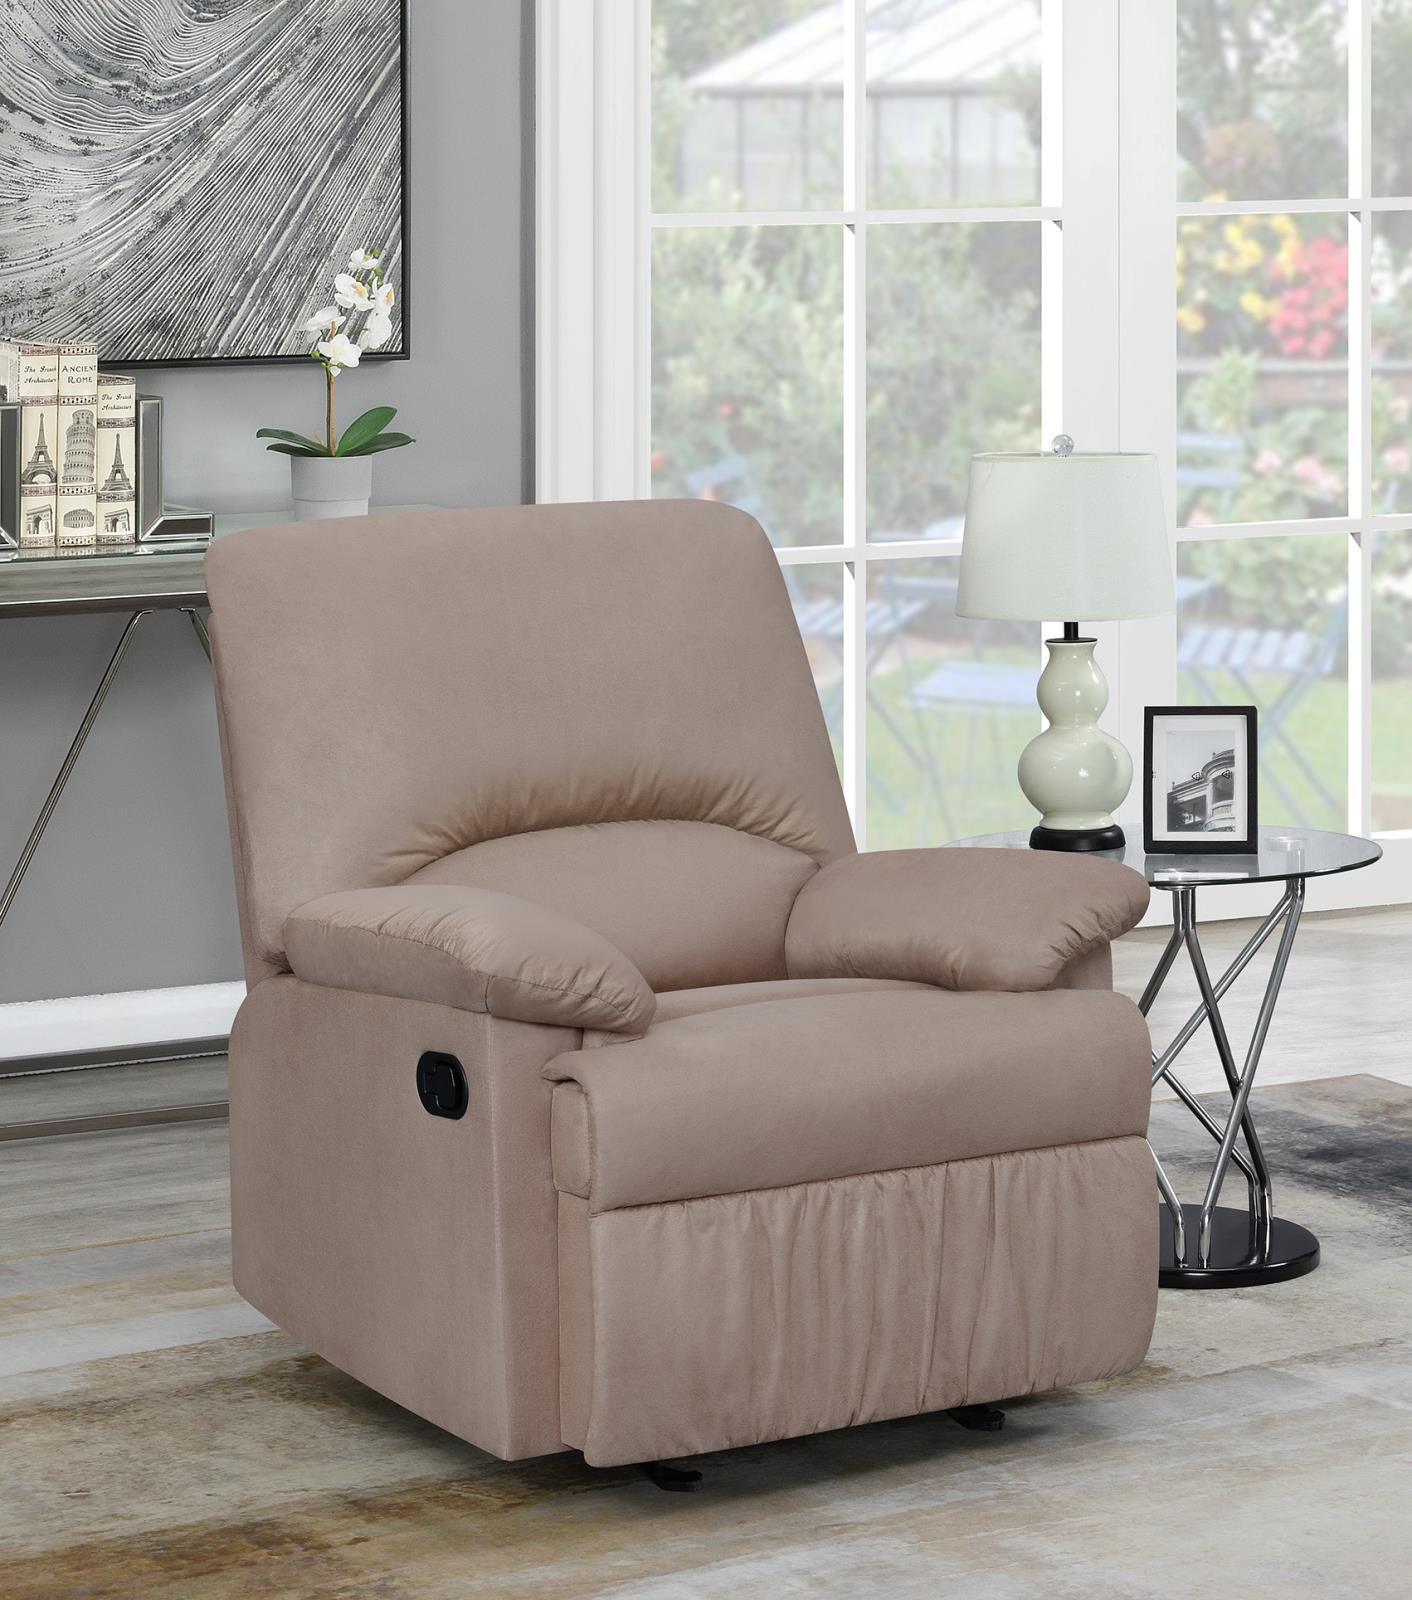 Living Room : Gliders Recliner - Tan - Upholstered Glider Recliner Tan